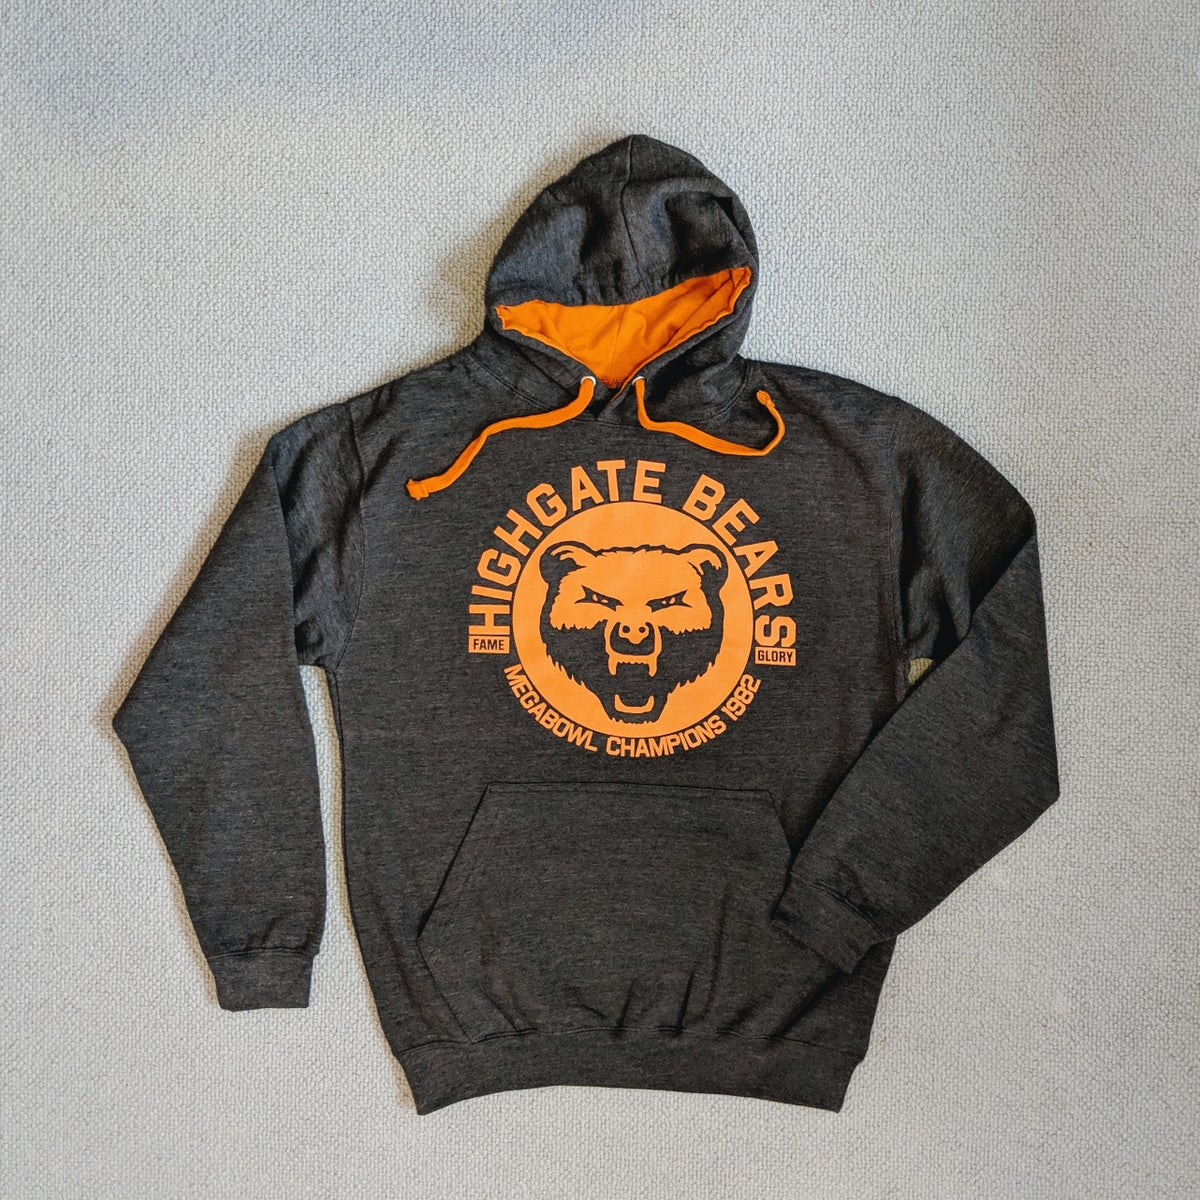 Image of Highgate Bears Hoodie - Premier Cru Edition (Charcoal)